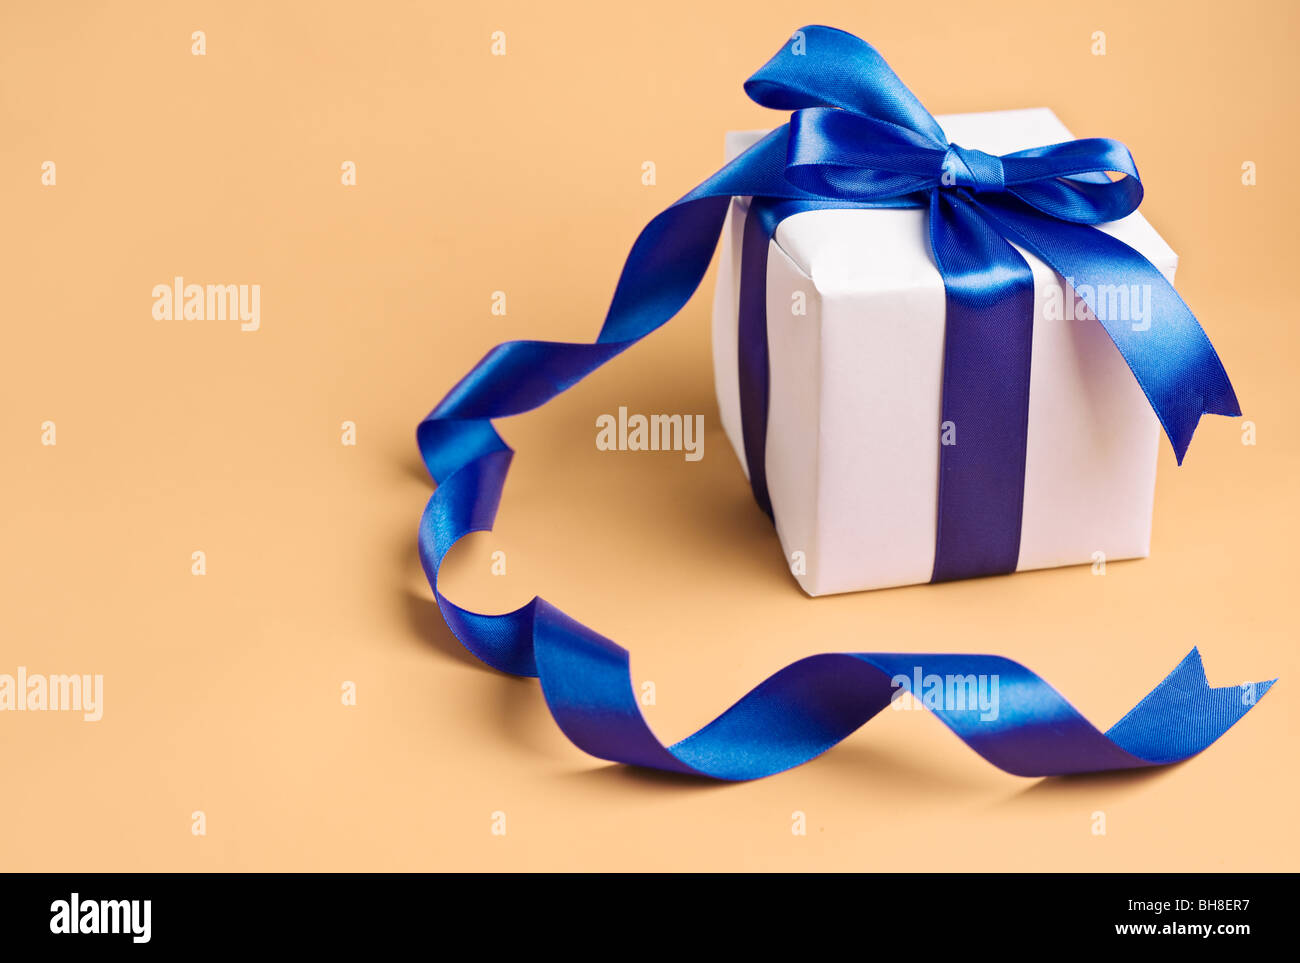 white gift with blue ribbon on a biege background - Stock Image